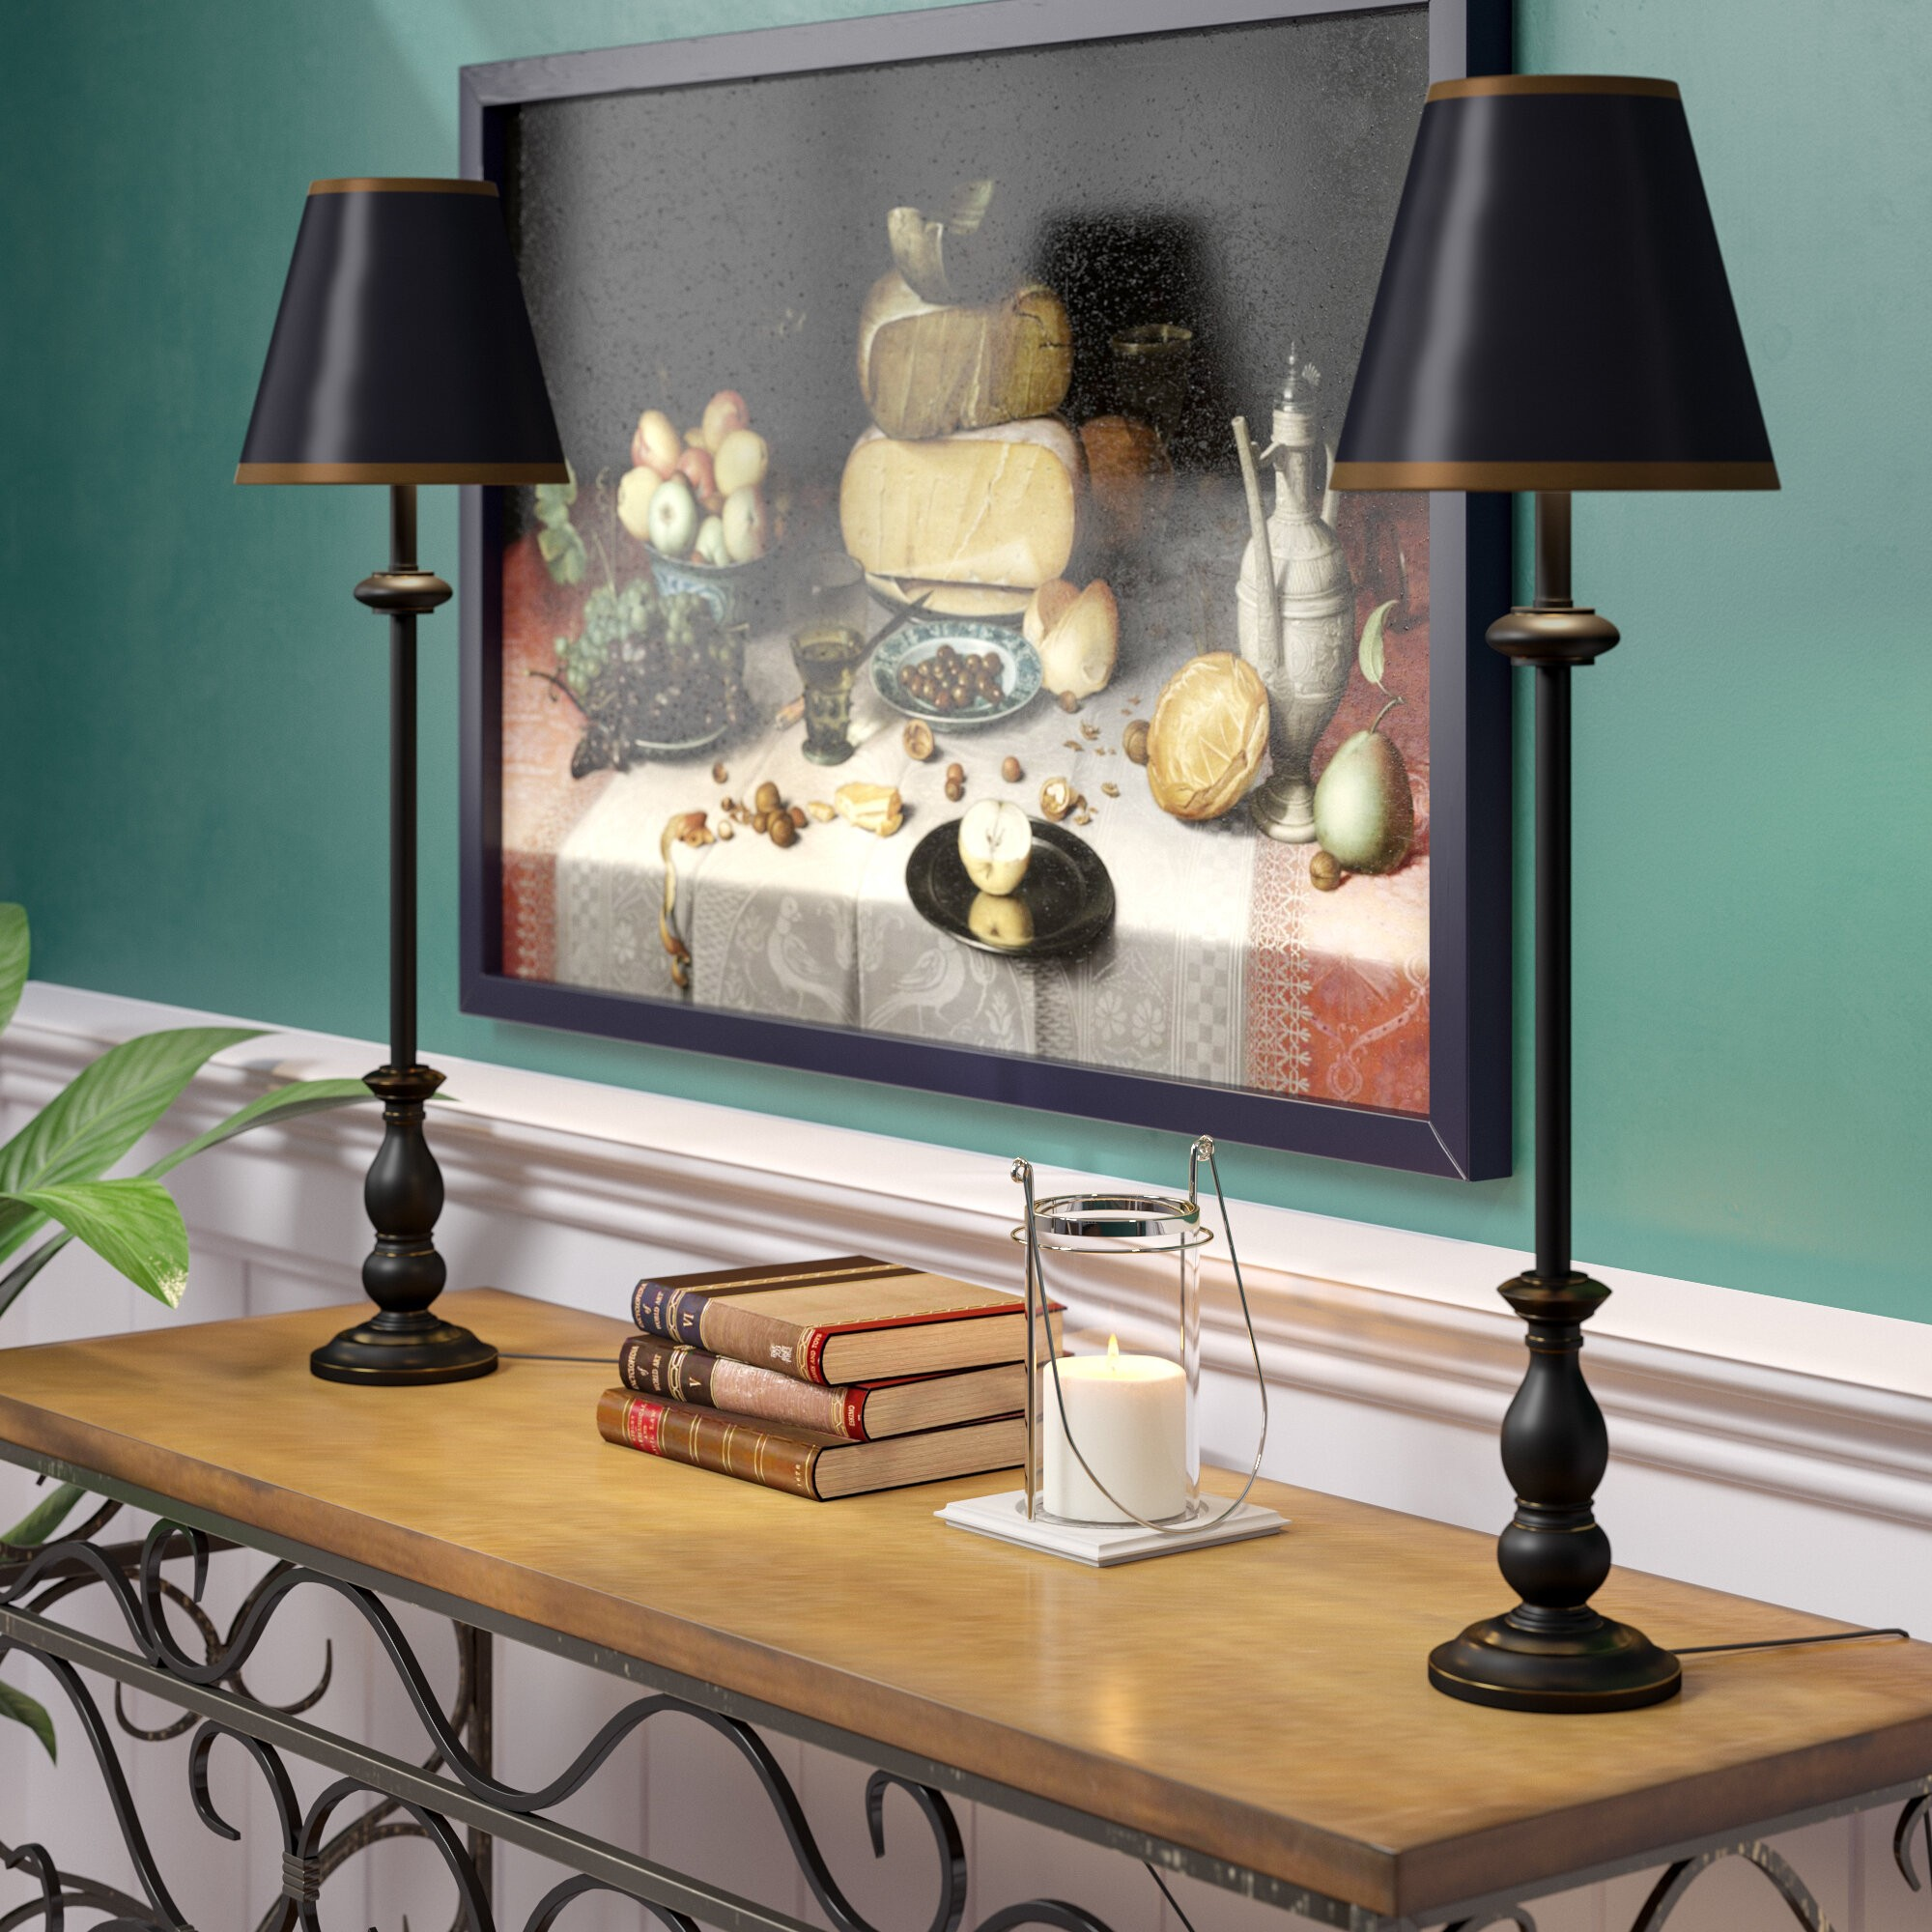 10 Best Buffet Lamps For 2021 Ideas On Foter